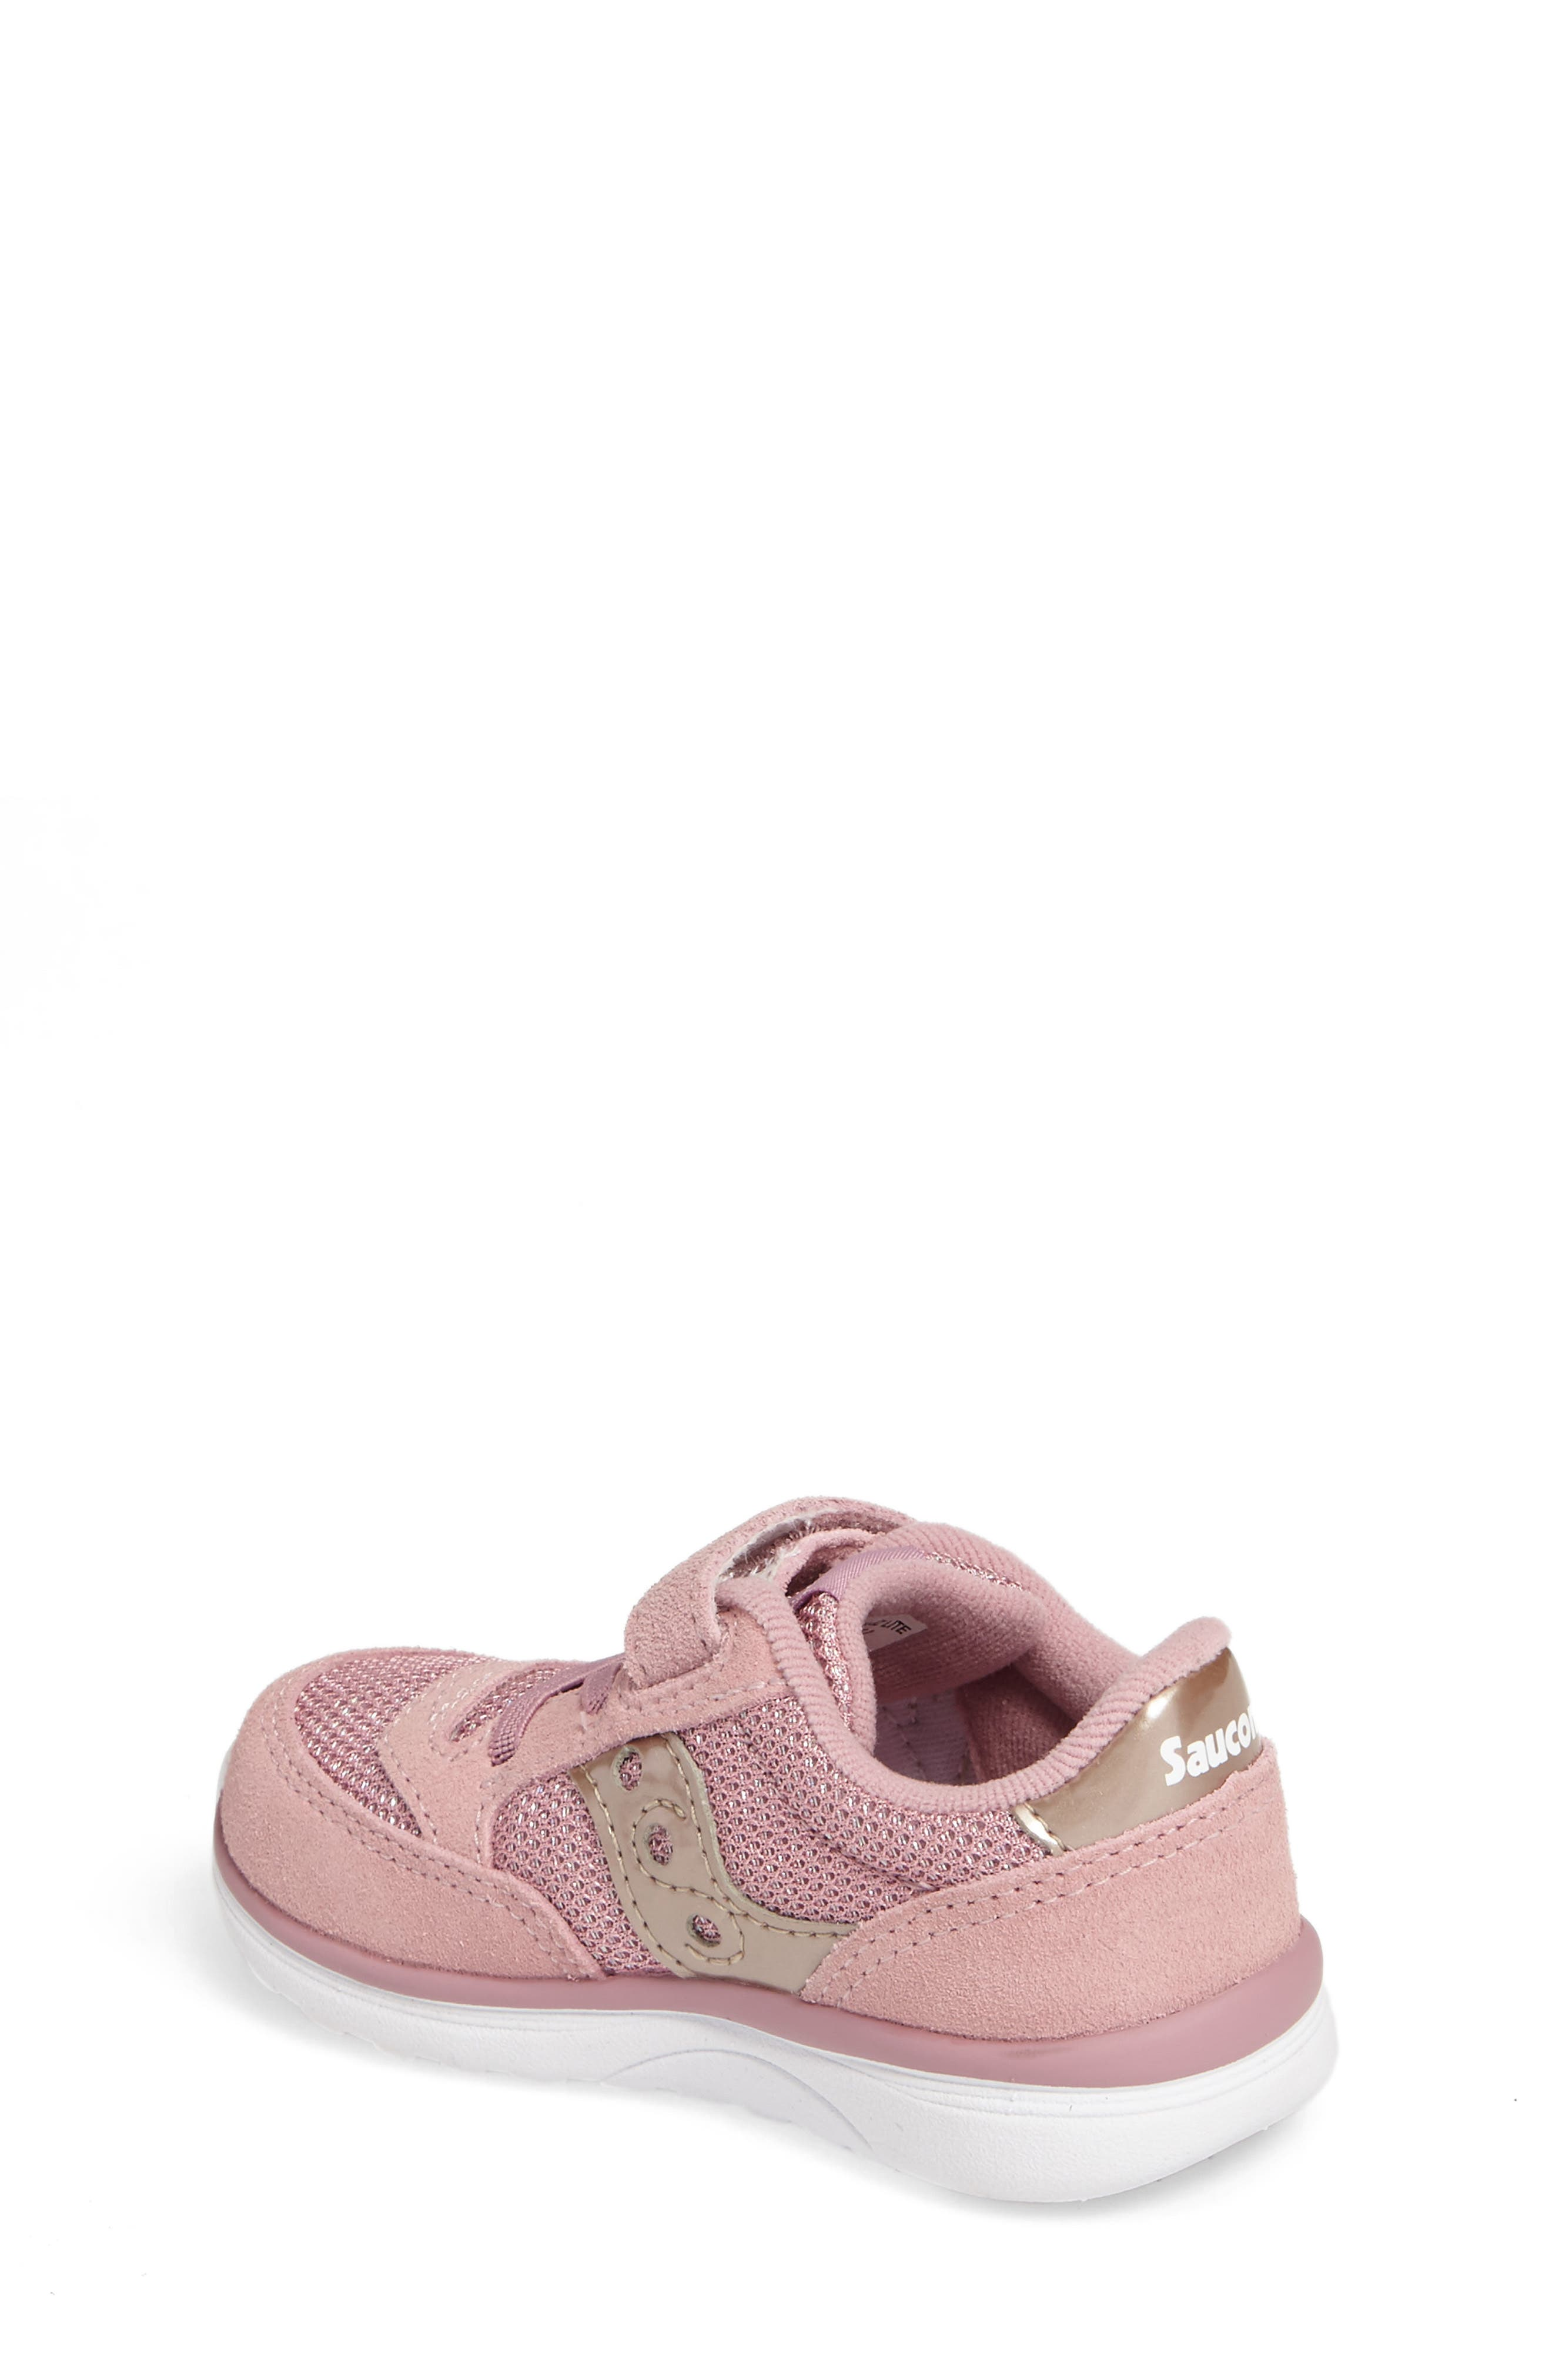 Jazz Lite Sneaker,                             Alternate thumbnail 2, color,                             BLUSH METALLIC